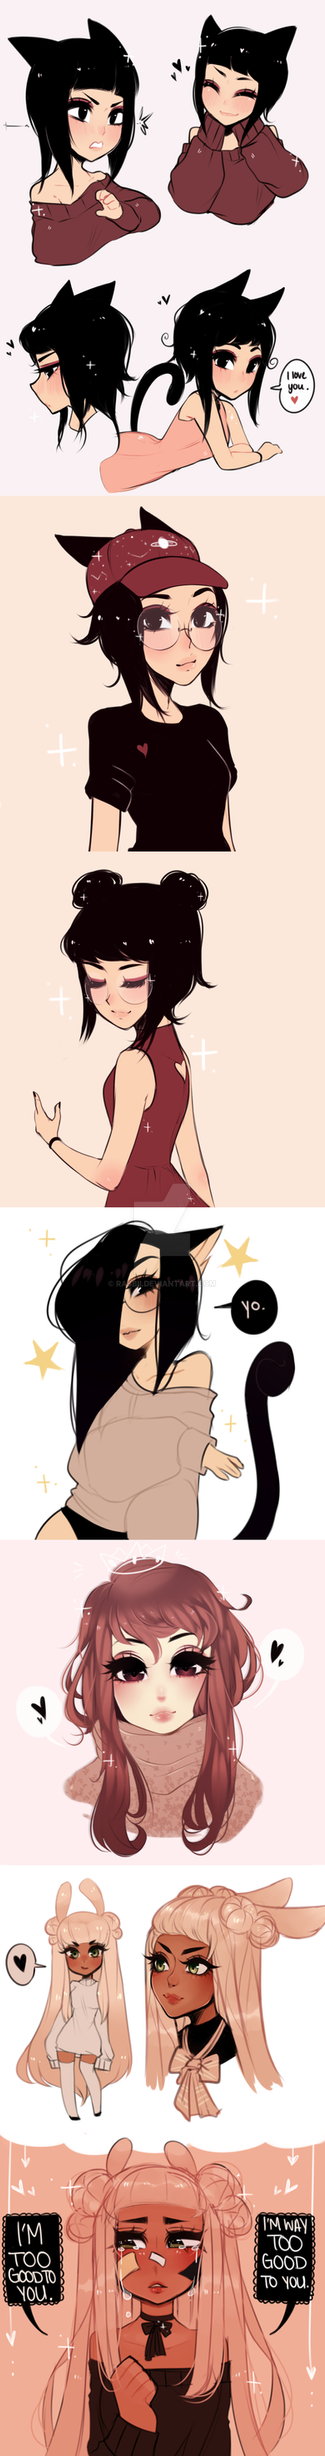 even more doodle dump by Rasbii